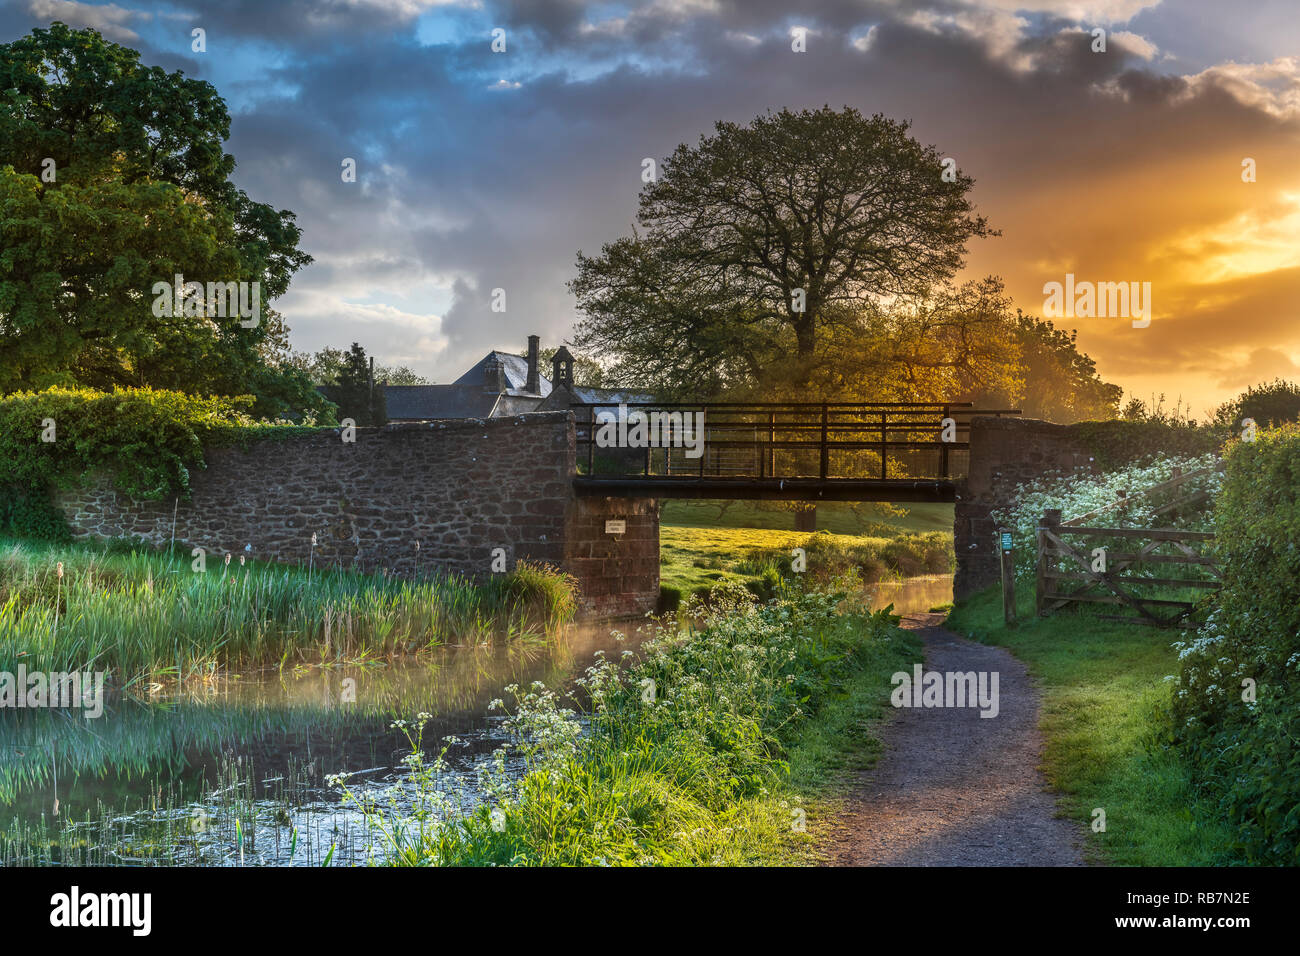 UK Weather - After a night of heavy showers, the sun rises behind Ayshford Brige on the Great Western Canal near Samford Peverell in Devon. - Stock Image